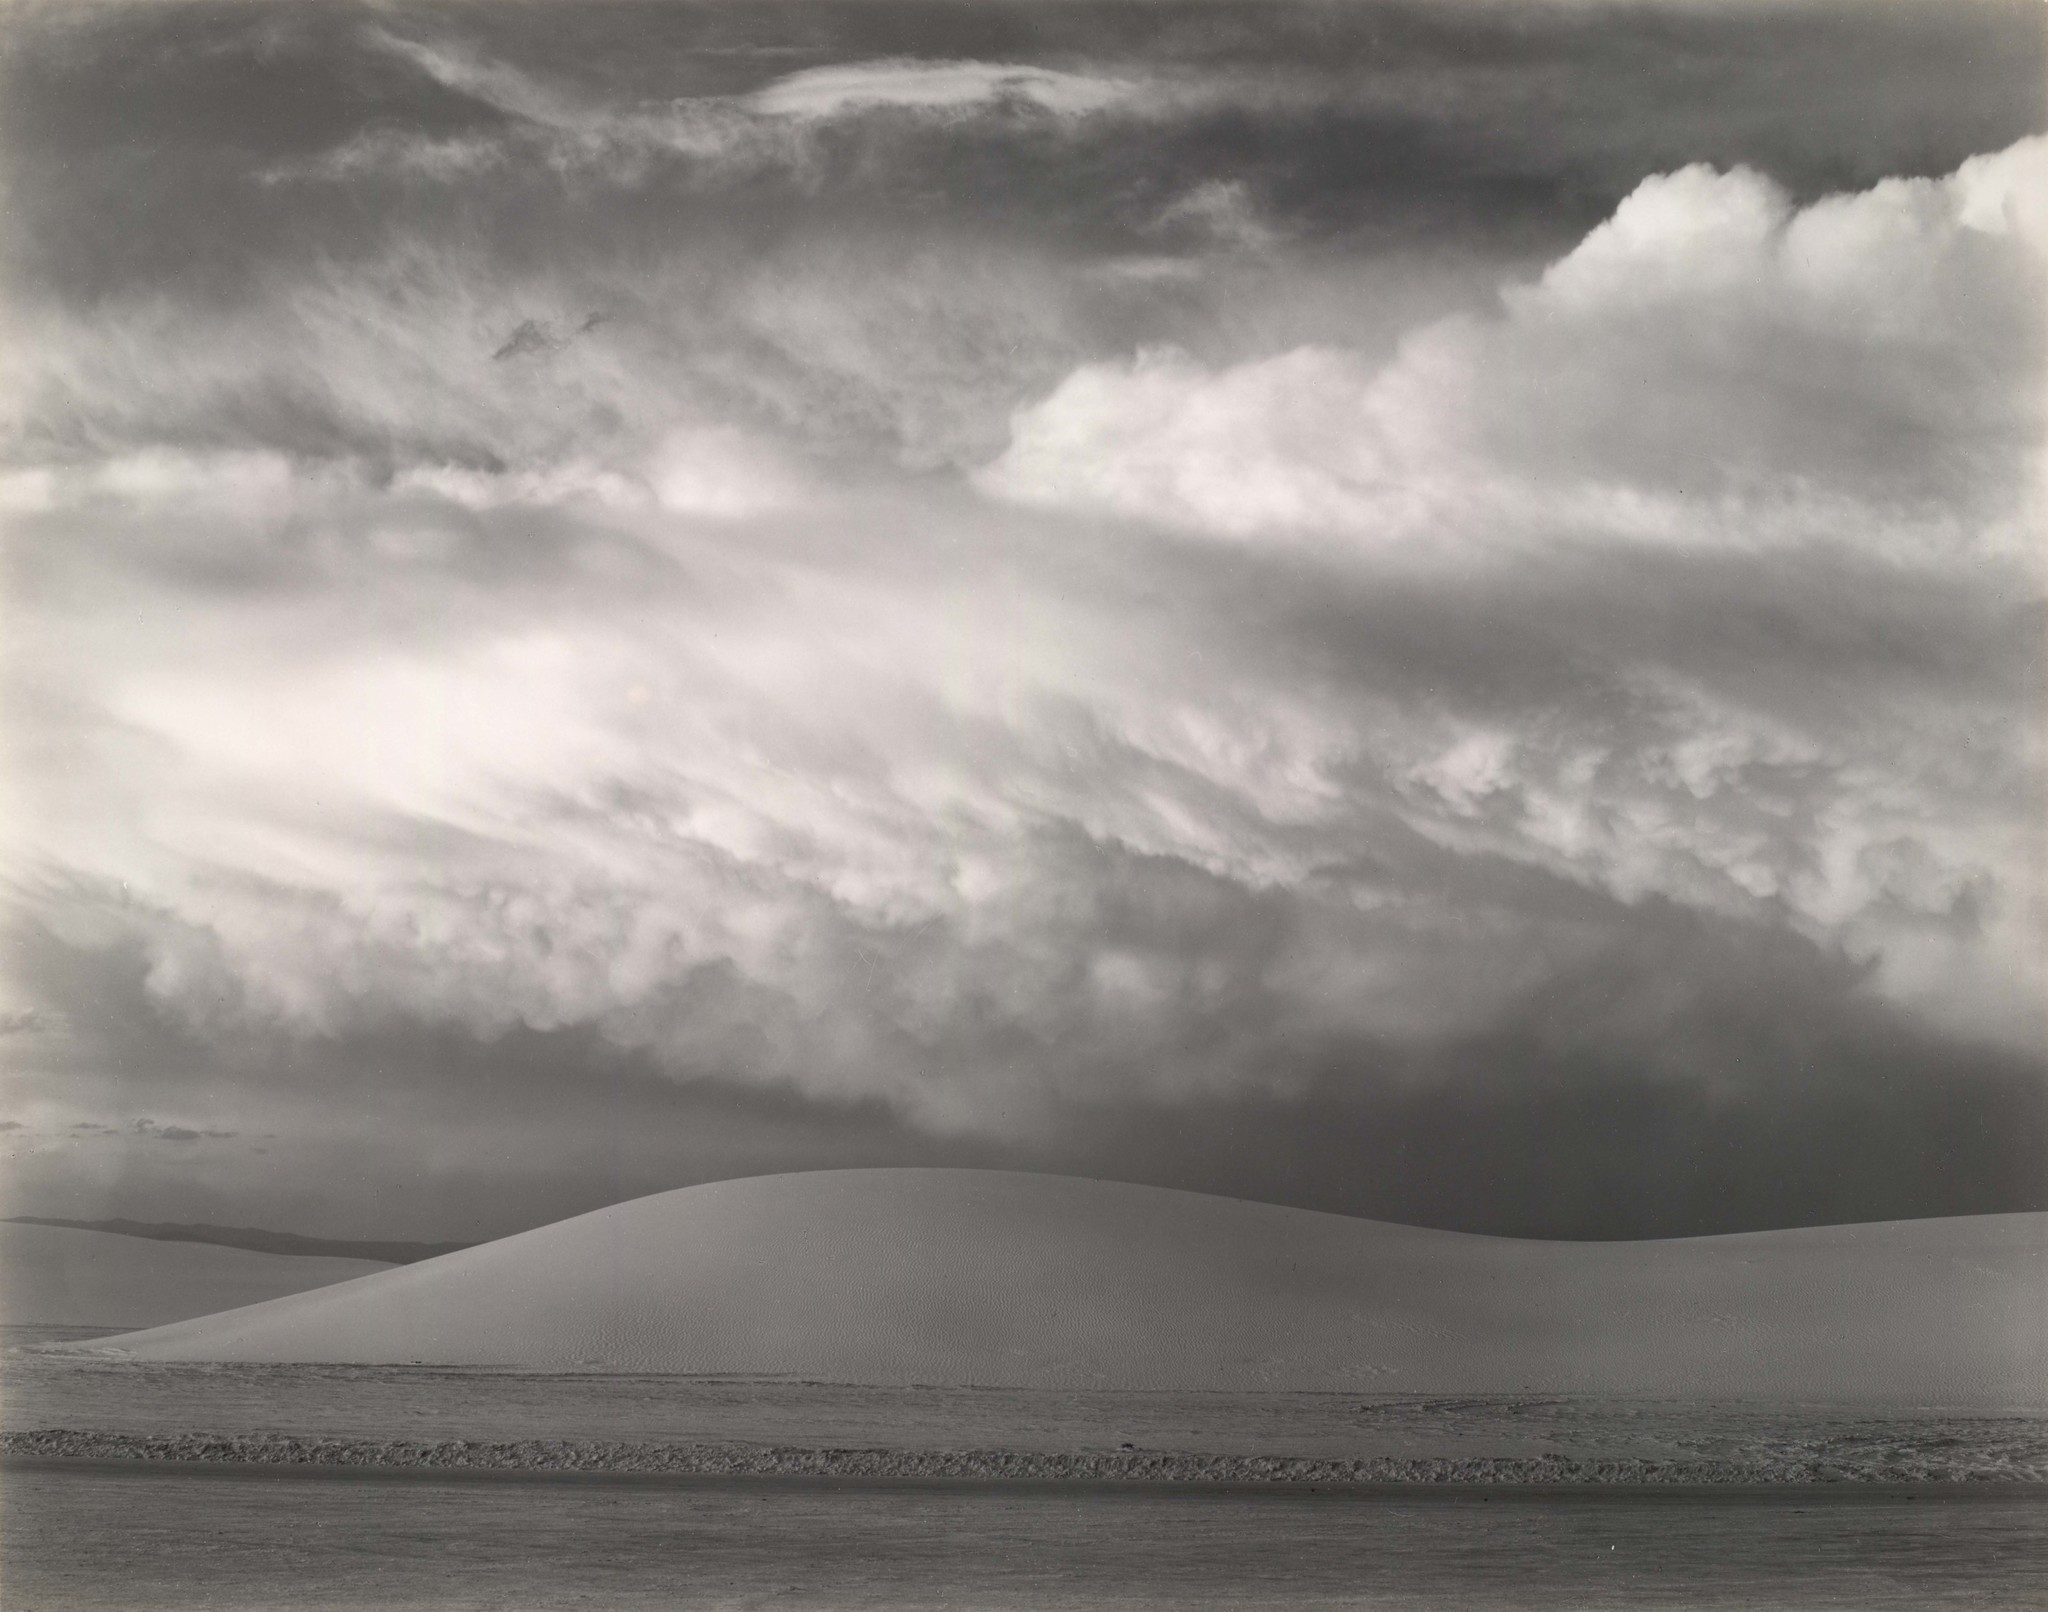 """White Sands, New Mexico,"" 1941, gelatin silver print."